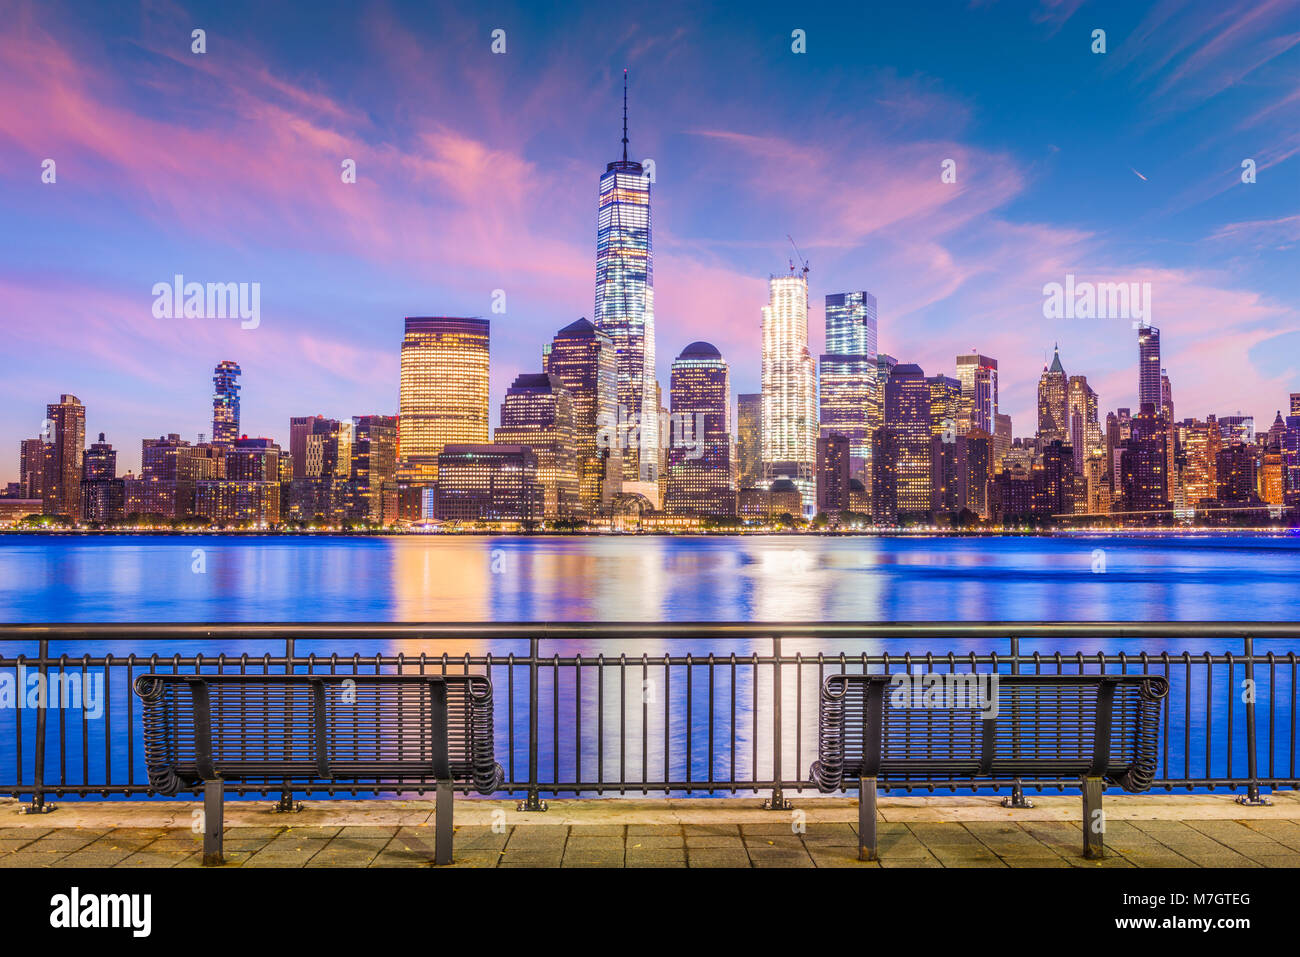 New York City financial district on the Hudson River at twilight. - Stock Image